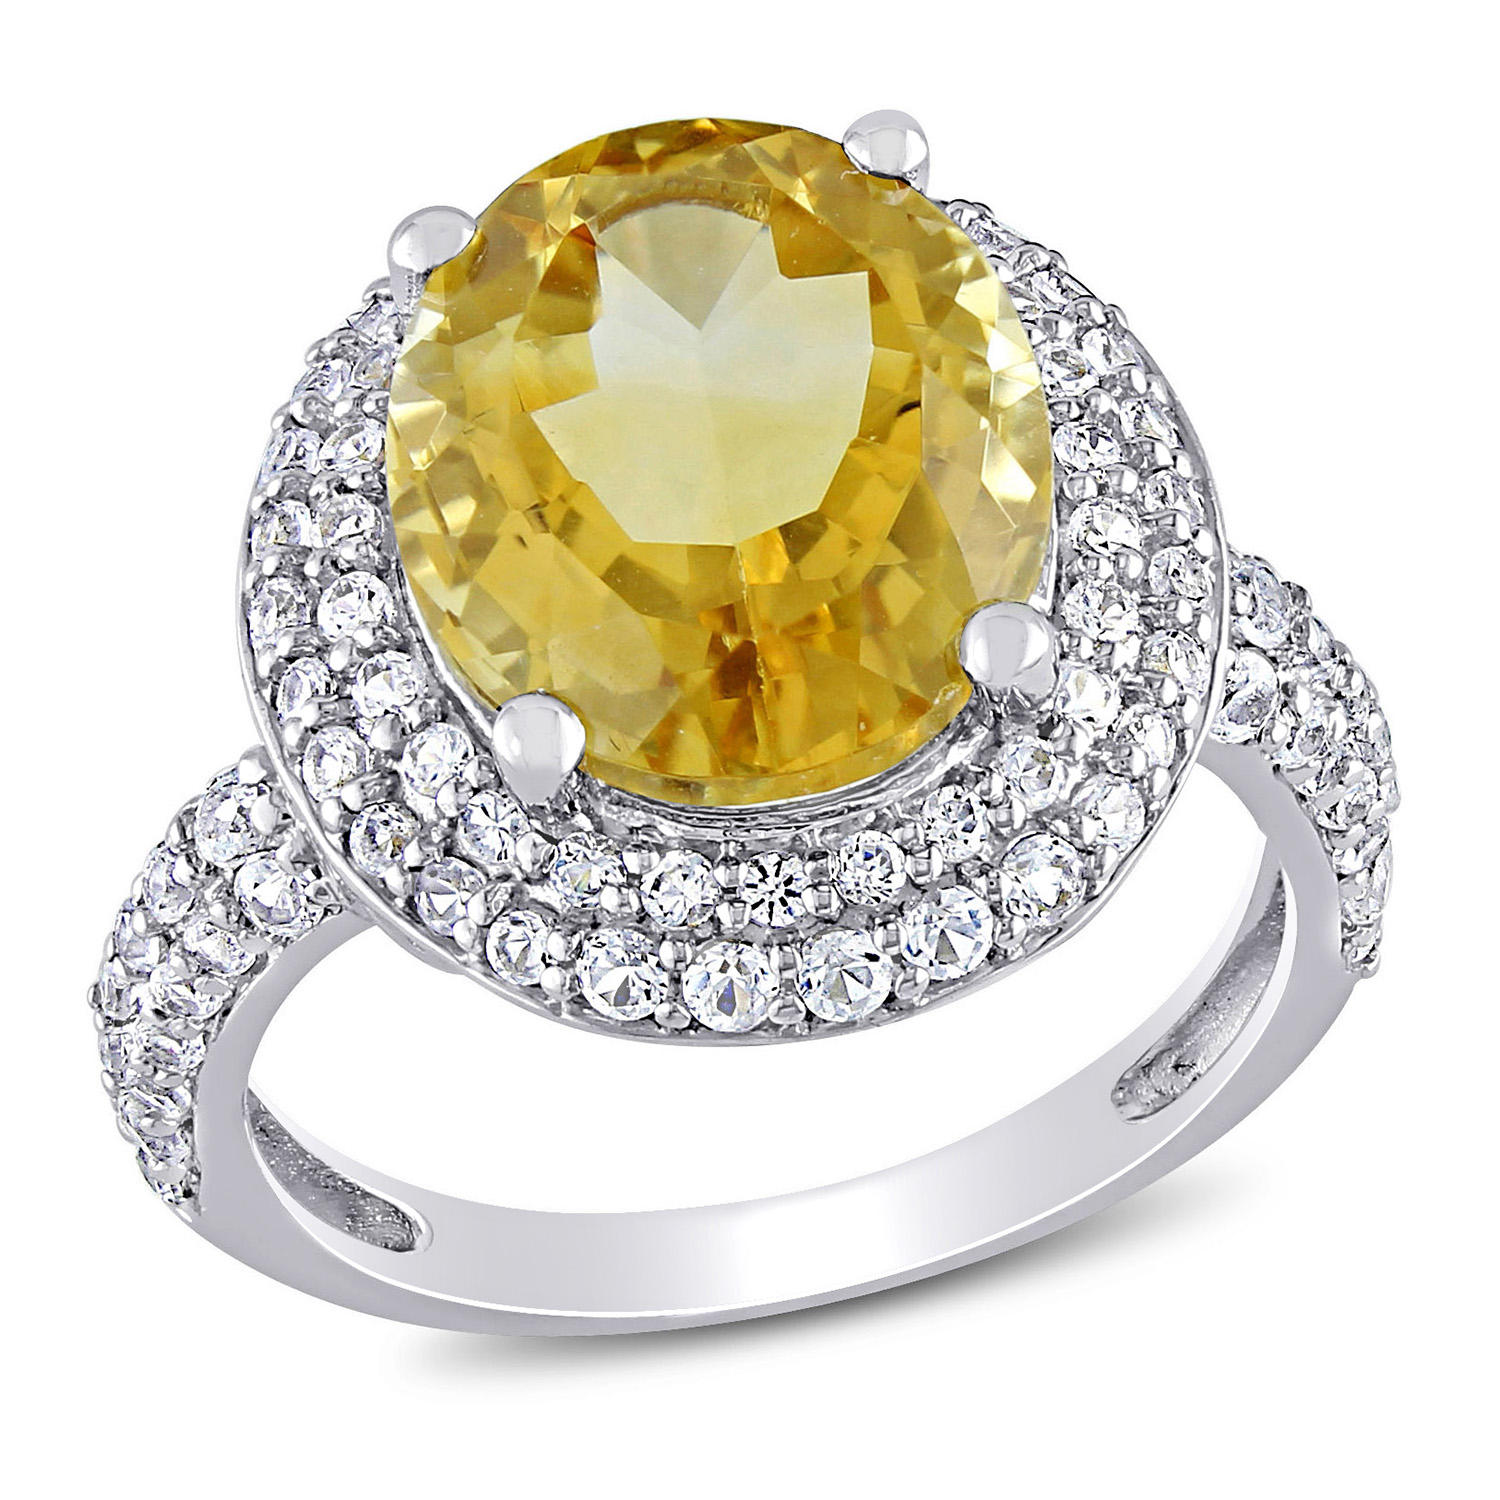 4.3 CT. T.G.W. Citrine & 1.14 CT. T.G.W. White Sapphire Cocktail Ring